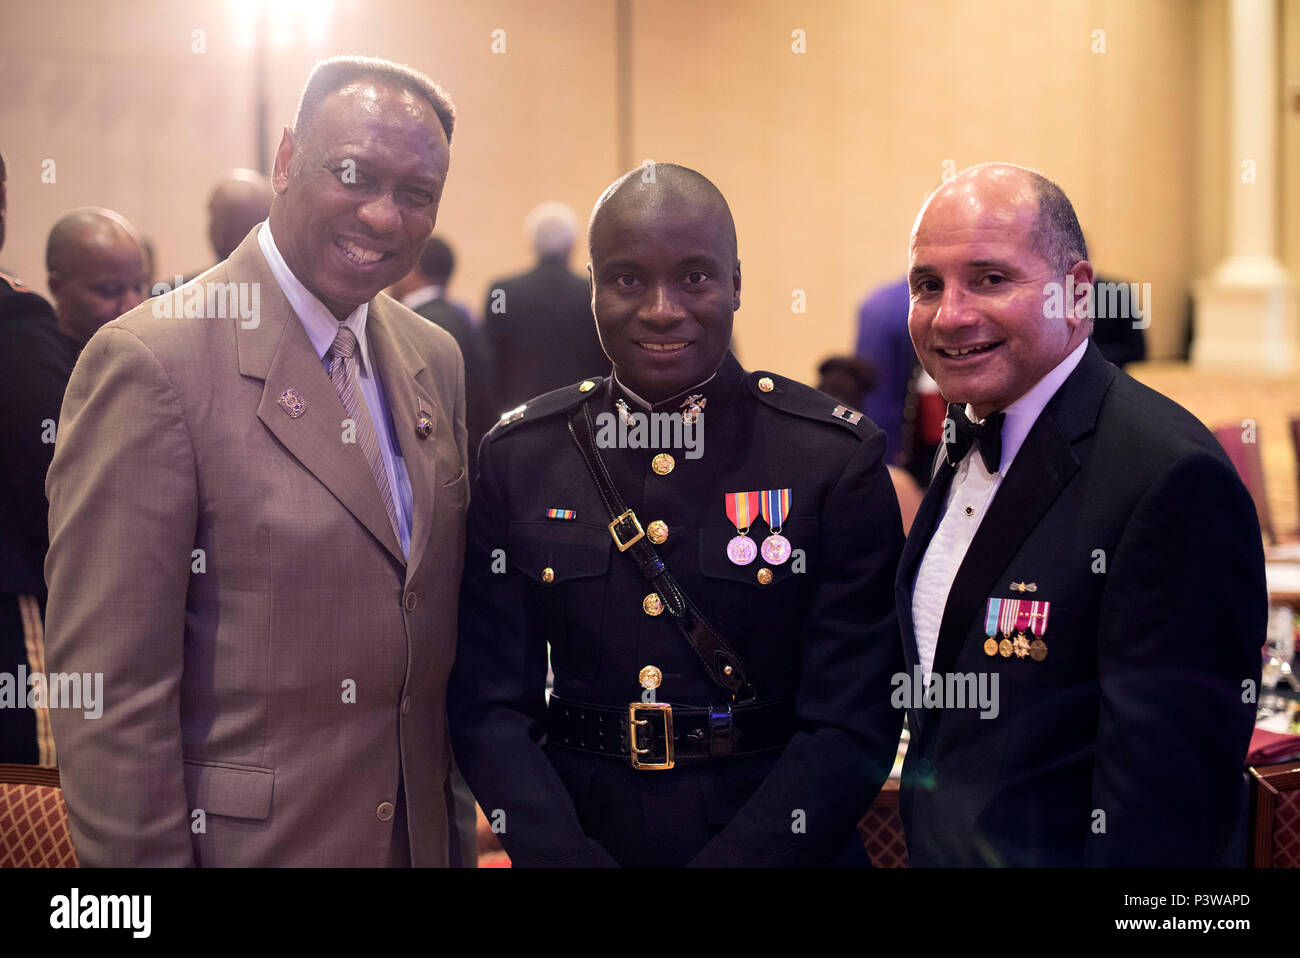 Capt. Nubari Kogbara talks with fraternity members during the Omega Psi Phi Fraternity's 80th Grand Conclave in Las Vegas July 23. This event gave the Marine Corps the opportunity to engage with qualified officer prospects and key influencers. - Stock Image